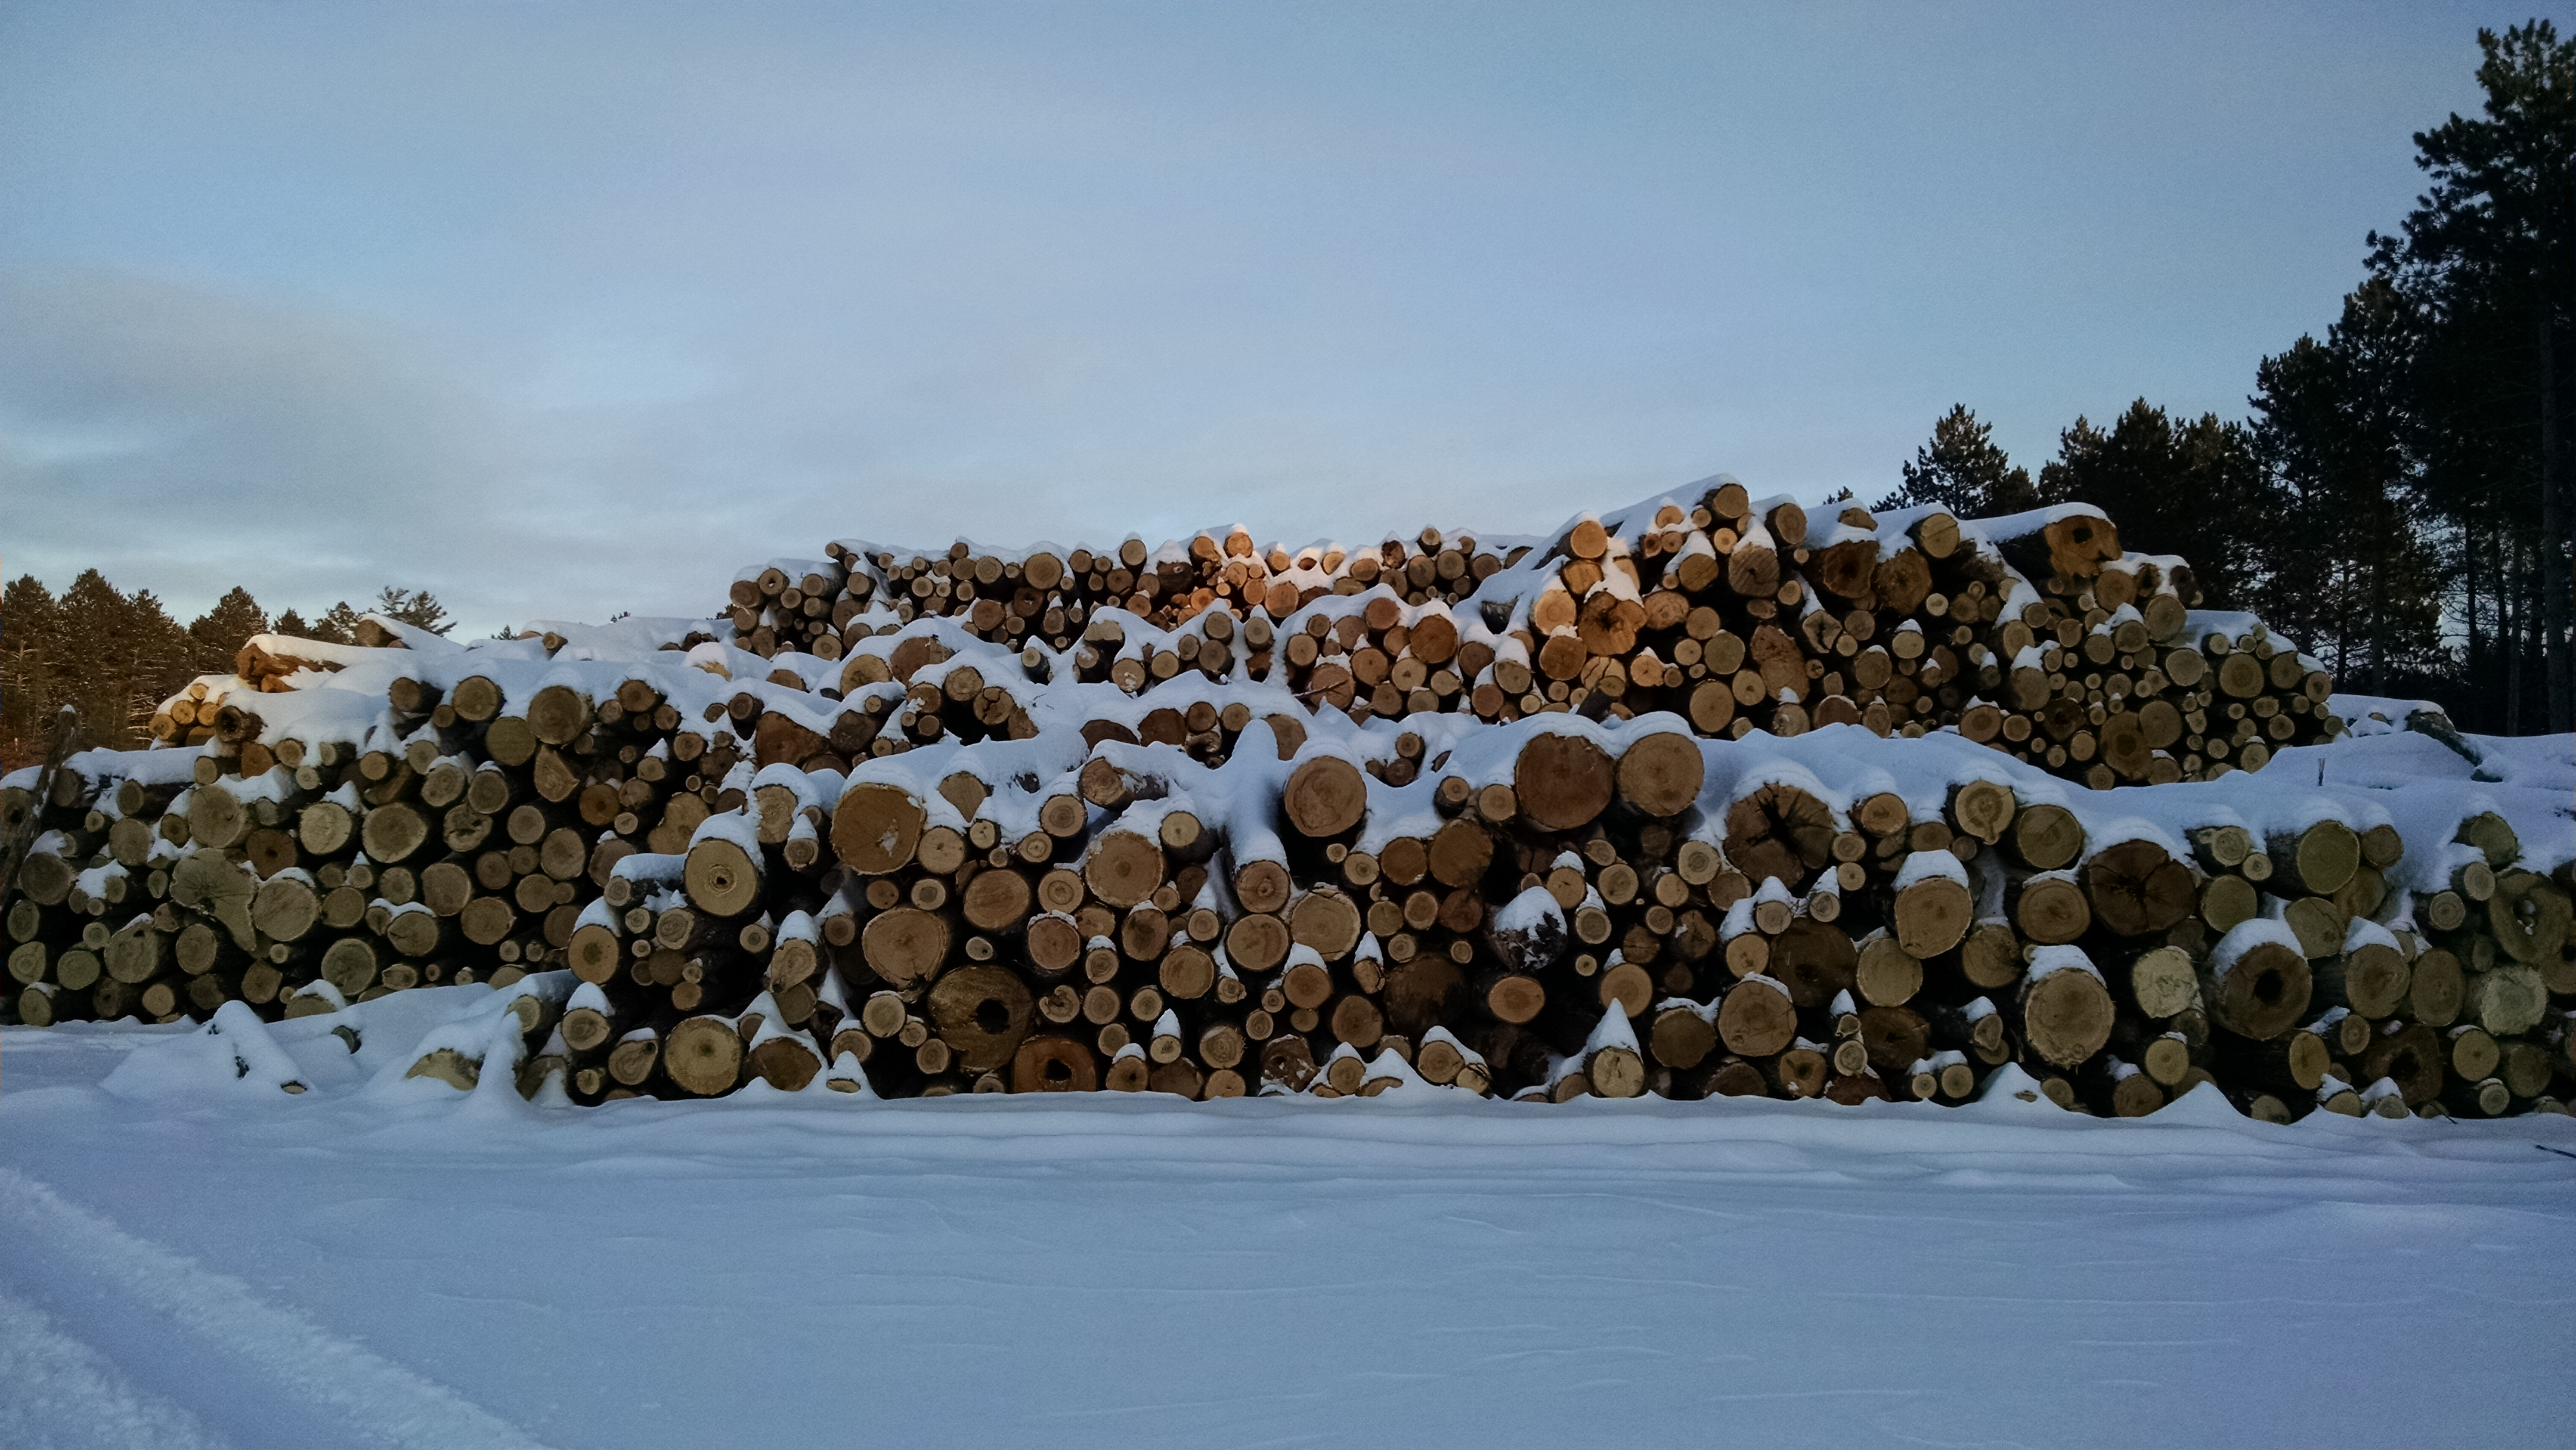 Photo: Stacks of salvaged logs piled in the snow